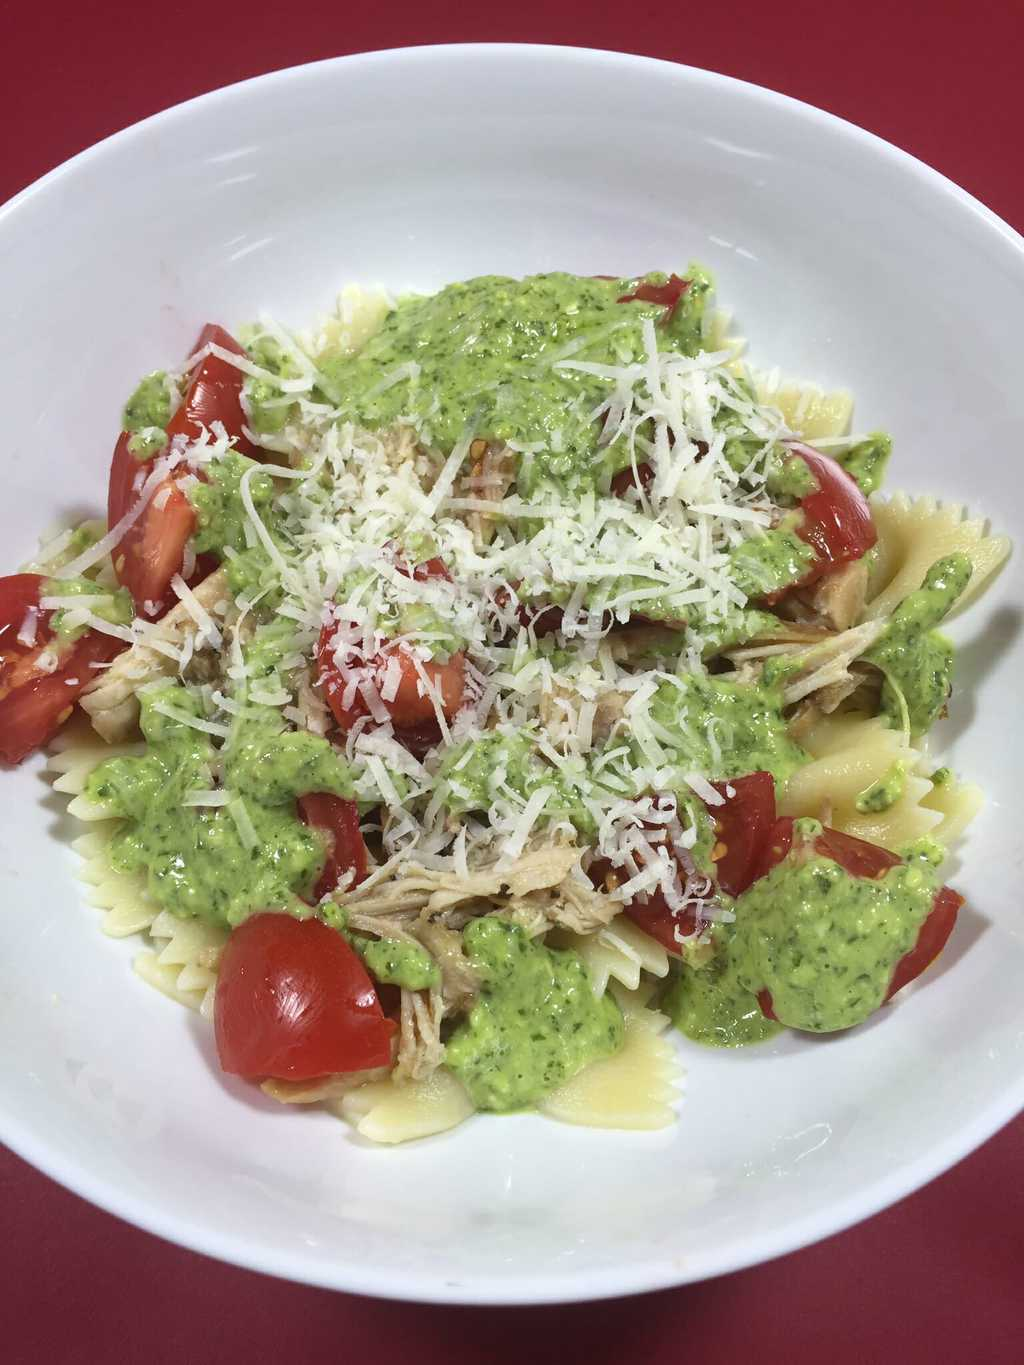 Bowties with Shredded Chicken and Creamy Pesto Sauce